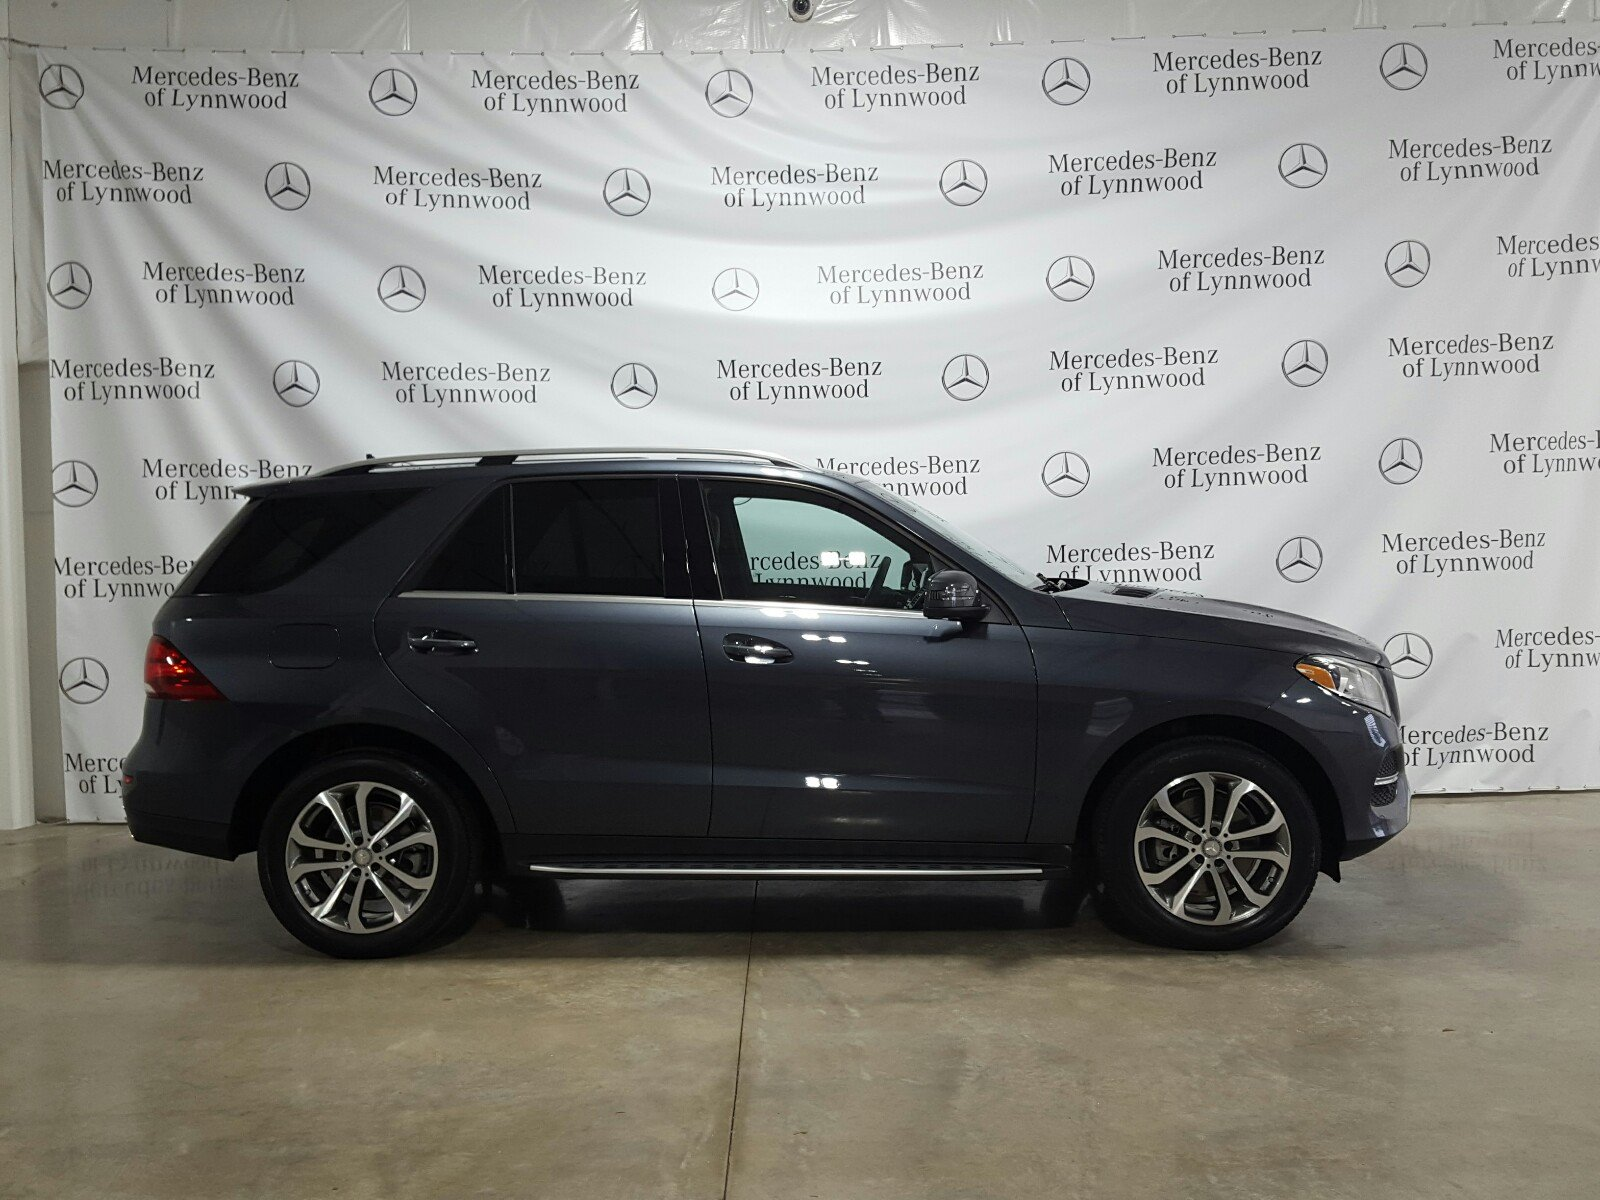 Certified Pre Owned 2016 Mercedes Benz GLE GLE 350 4MATIC SUV in